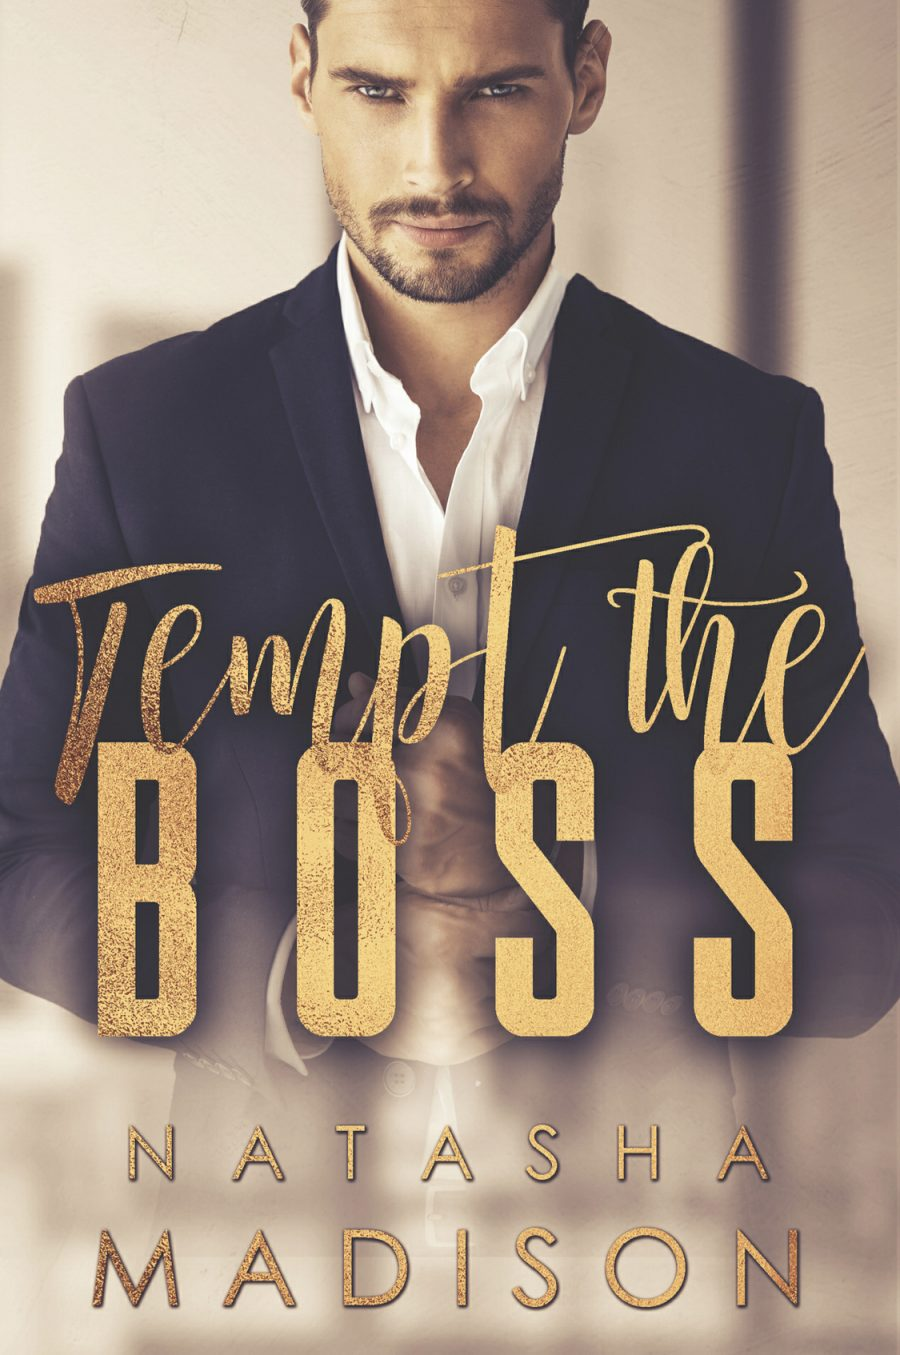 Tempt The Boss by Natasha Madison - A Book Review #BookReview #Contemporary #Romance #RomCom #BossRomance #ContemporaryRomance #Series